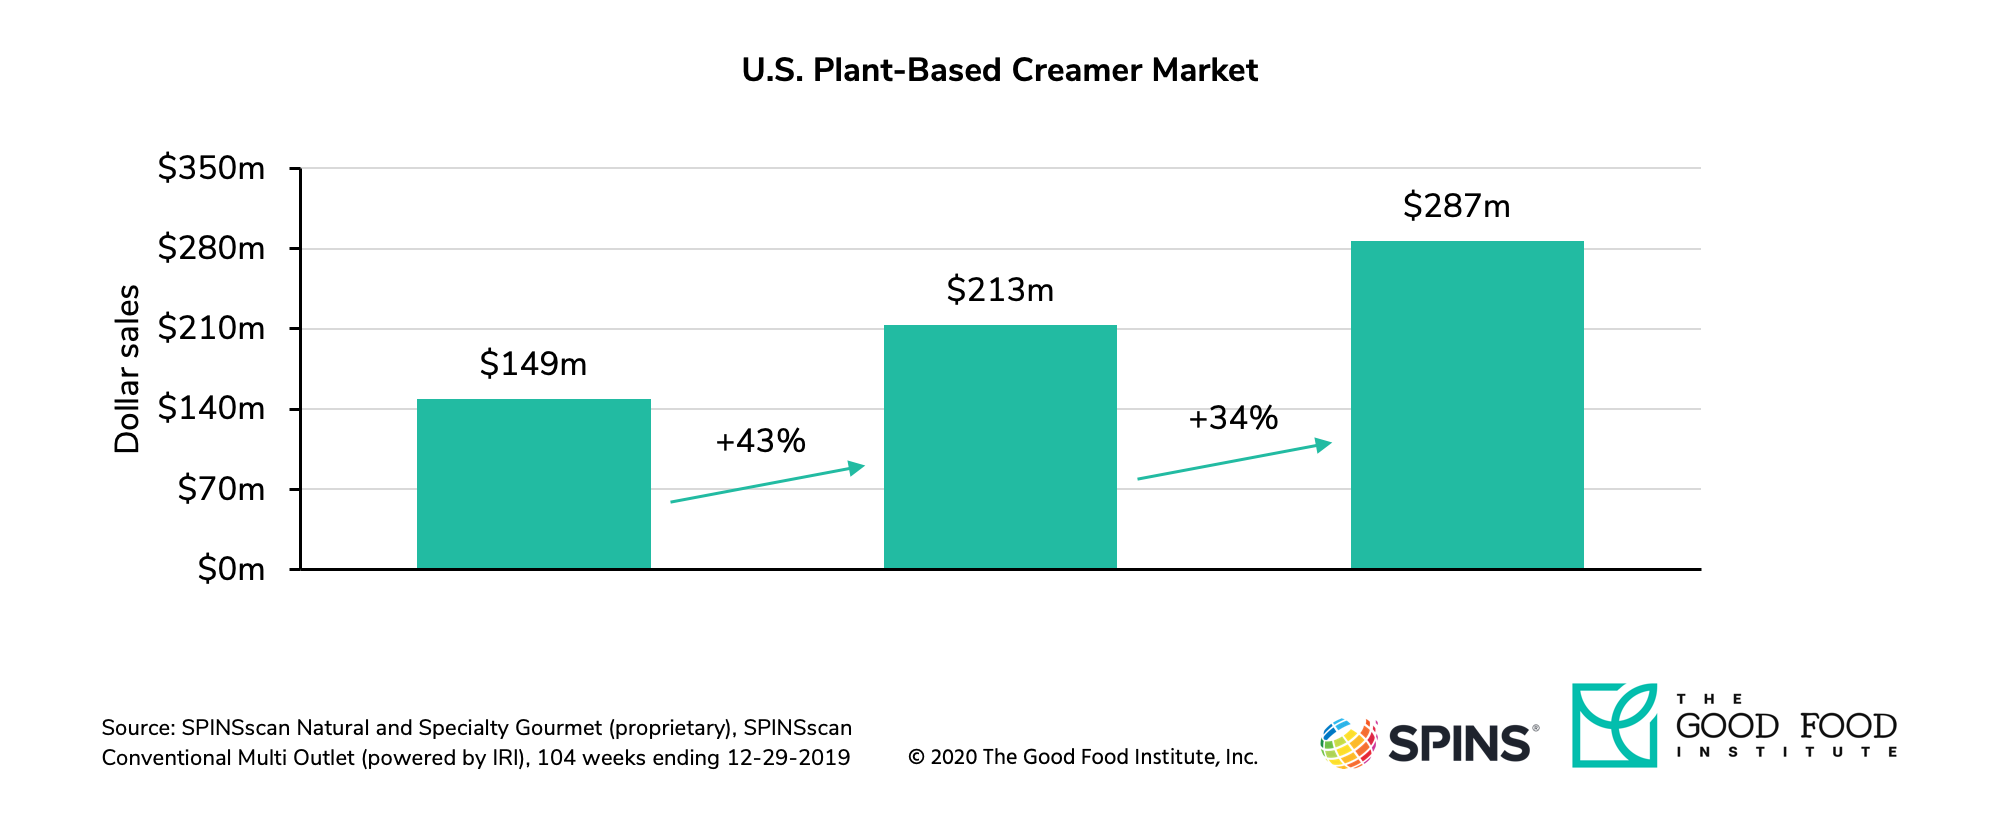 U.S. retail sales of dairy-free creamer reached $287 million in 2019.